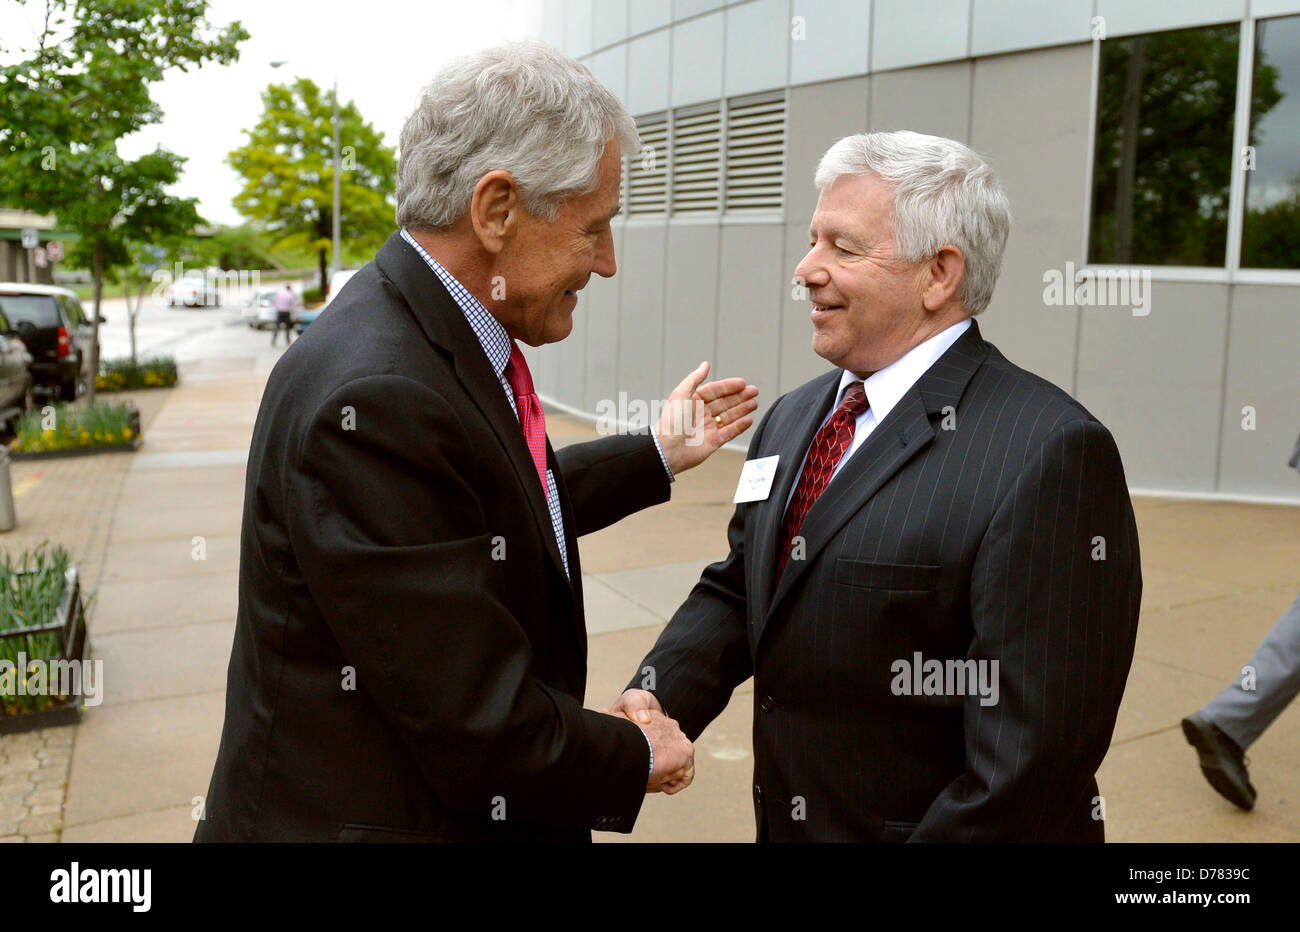 US Secretary of Defense Chuck Hagel is greeted by Fred Downey before meeting with the Aerospace Industries Association - Stock Image